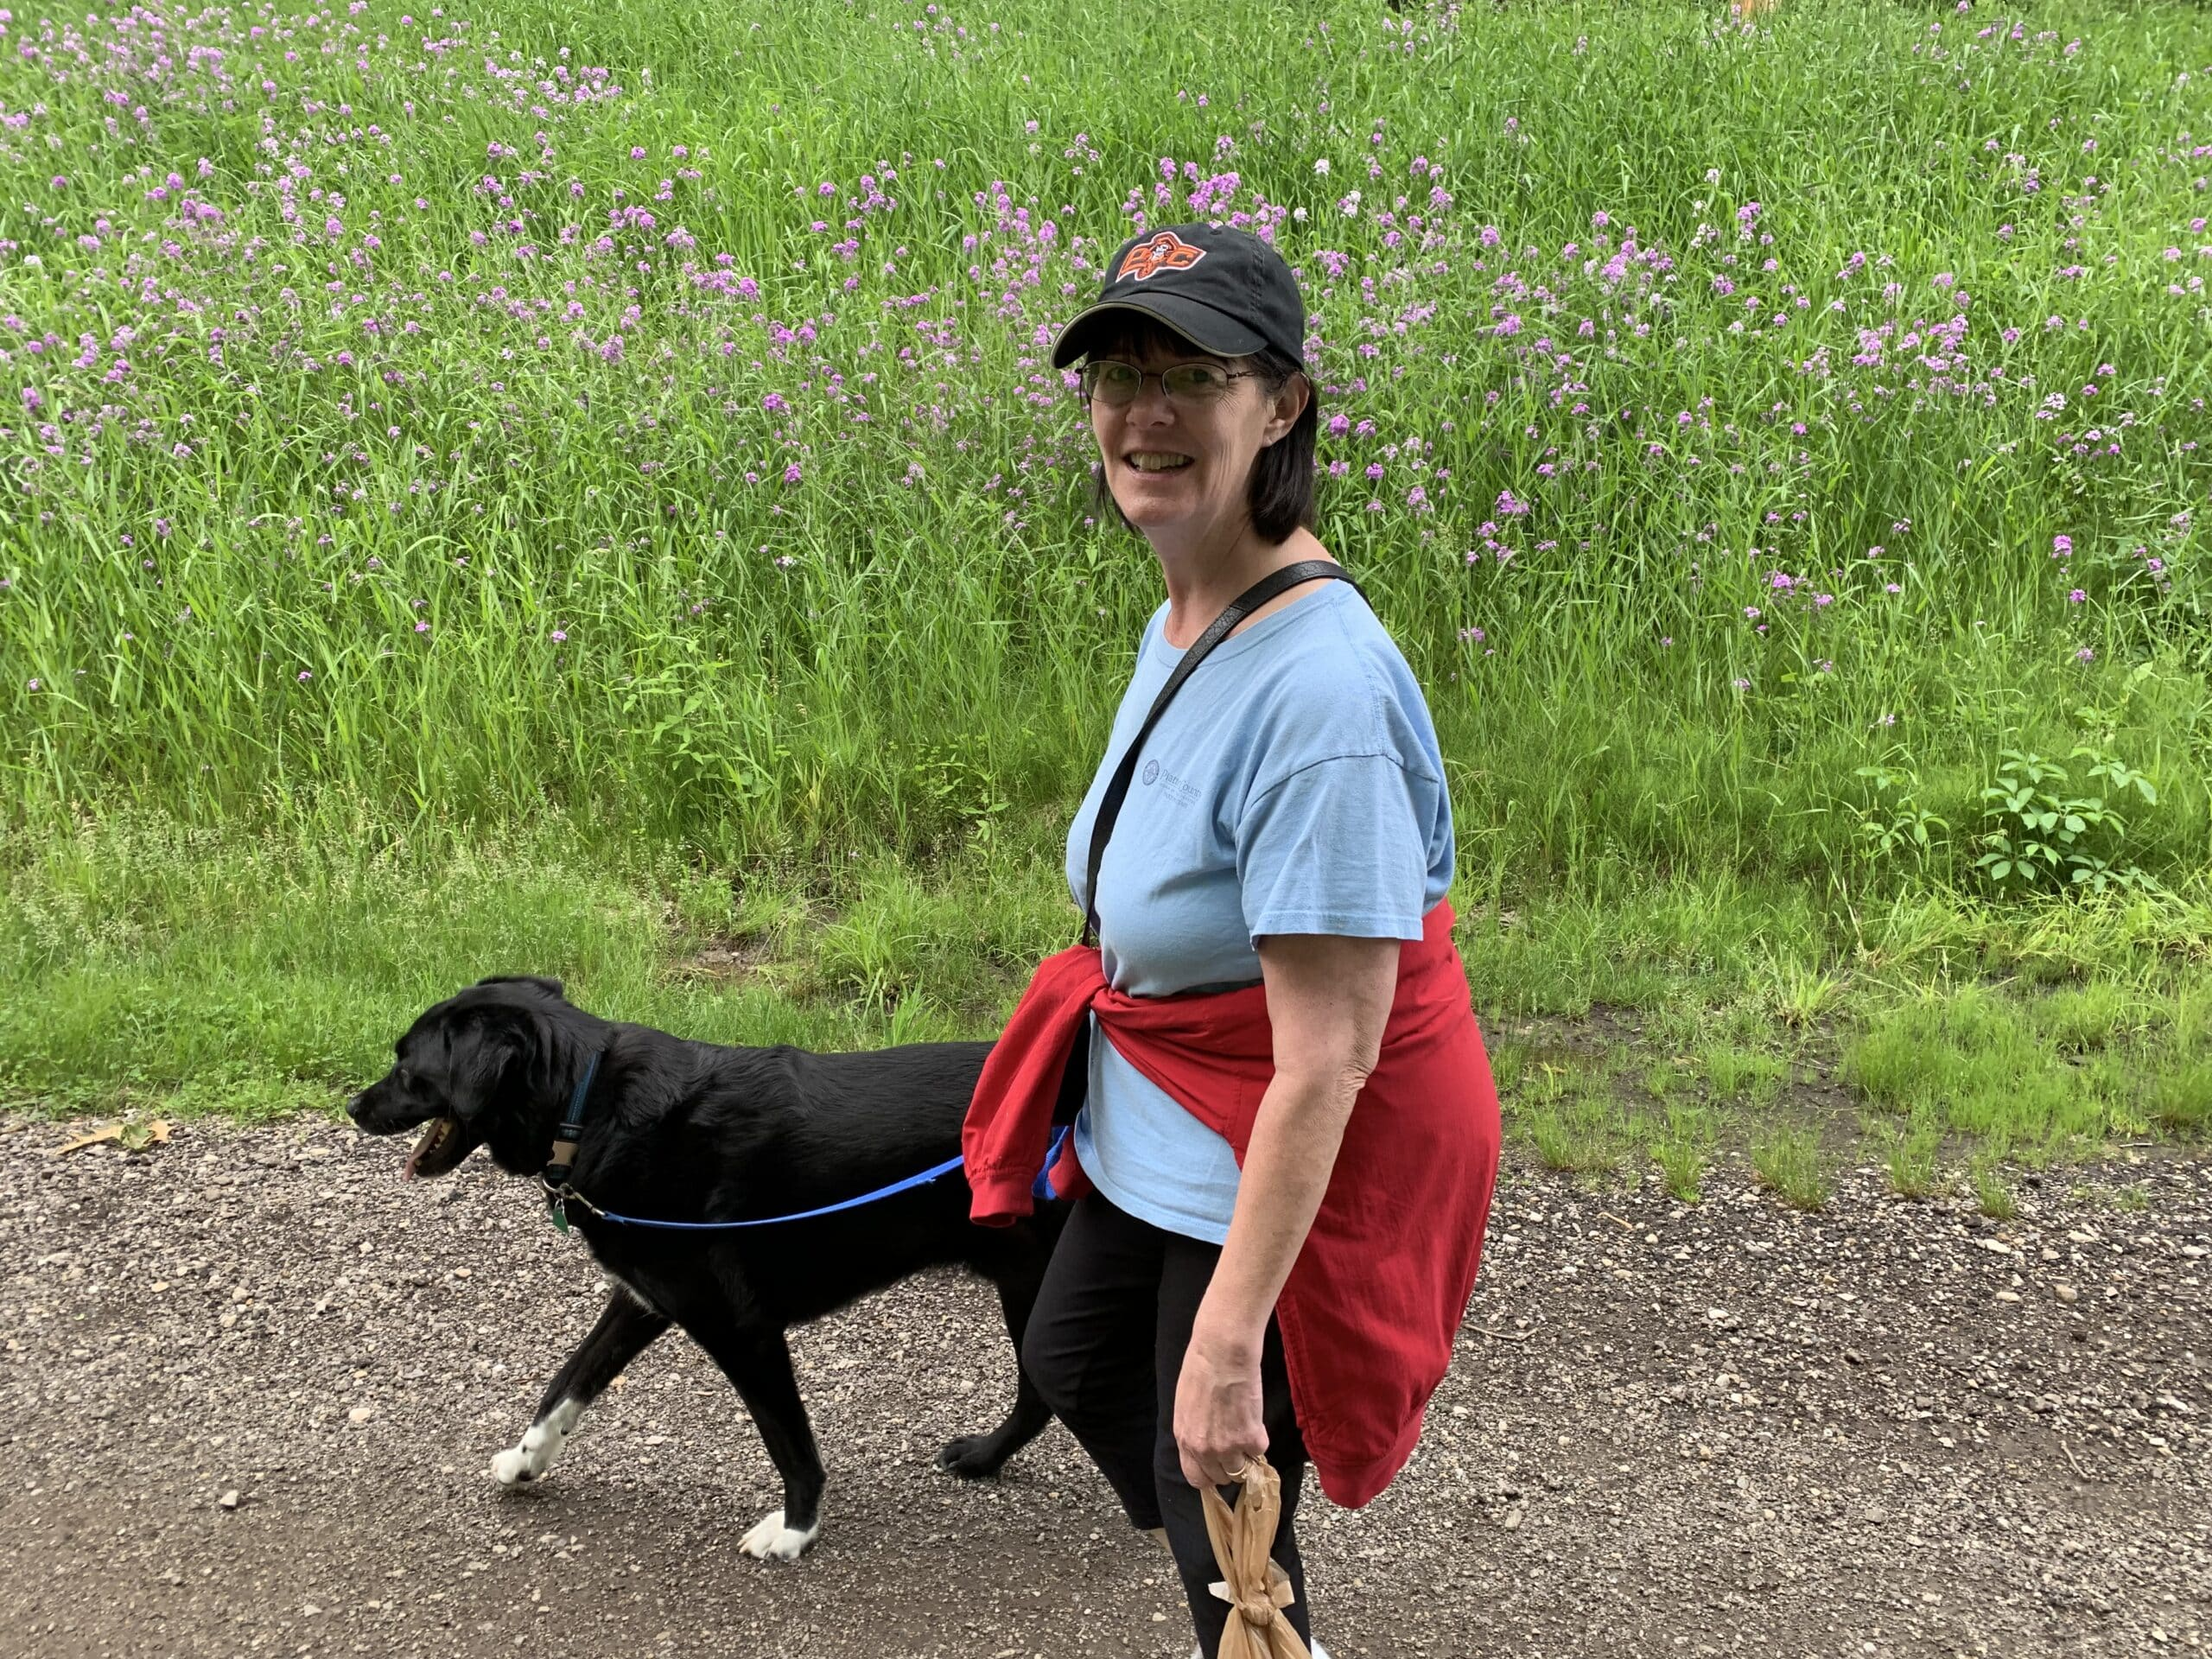 Woman walking large black dog with white socks on a trail with a filed of tiny purple flowers in background